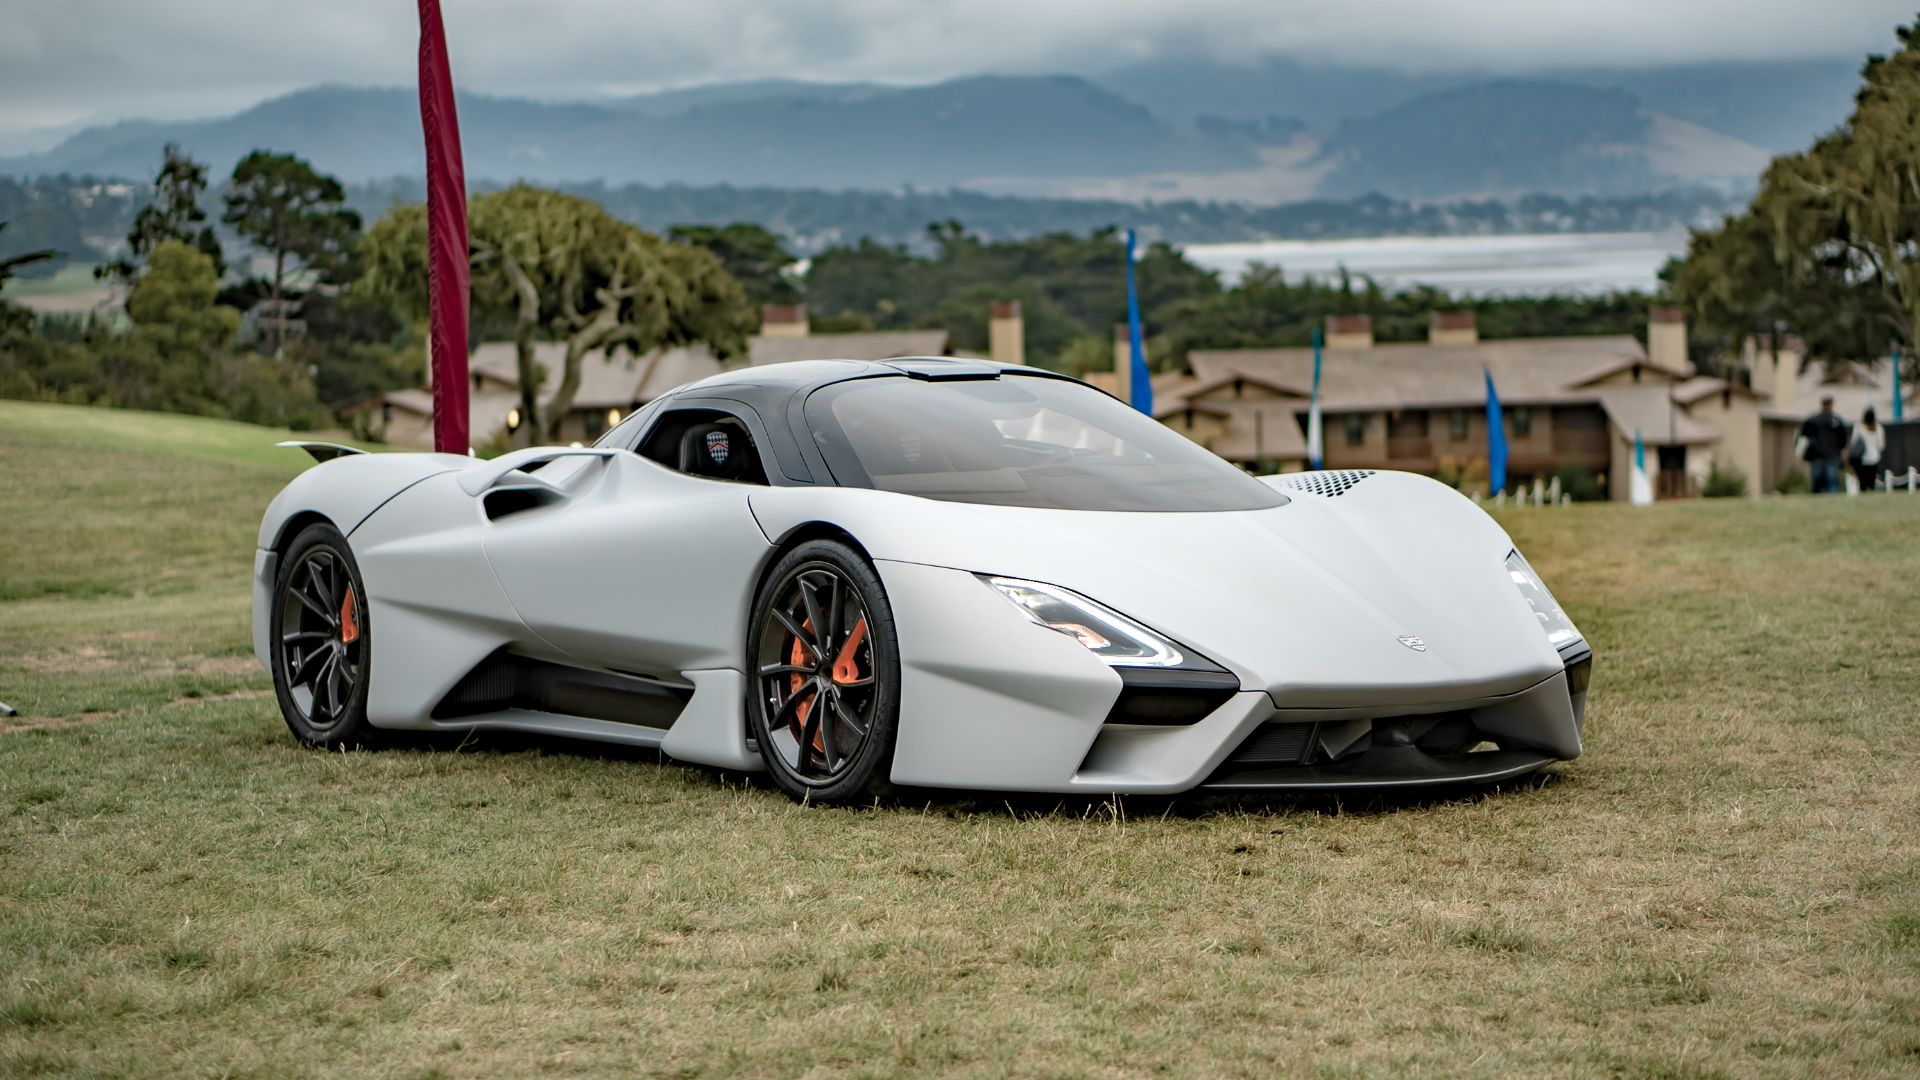 2019 SSC Tuatara – 300mph plus claimed